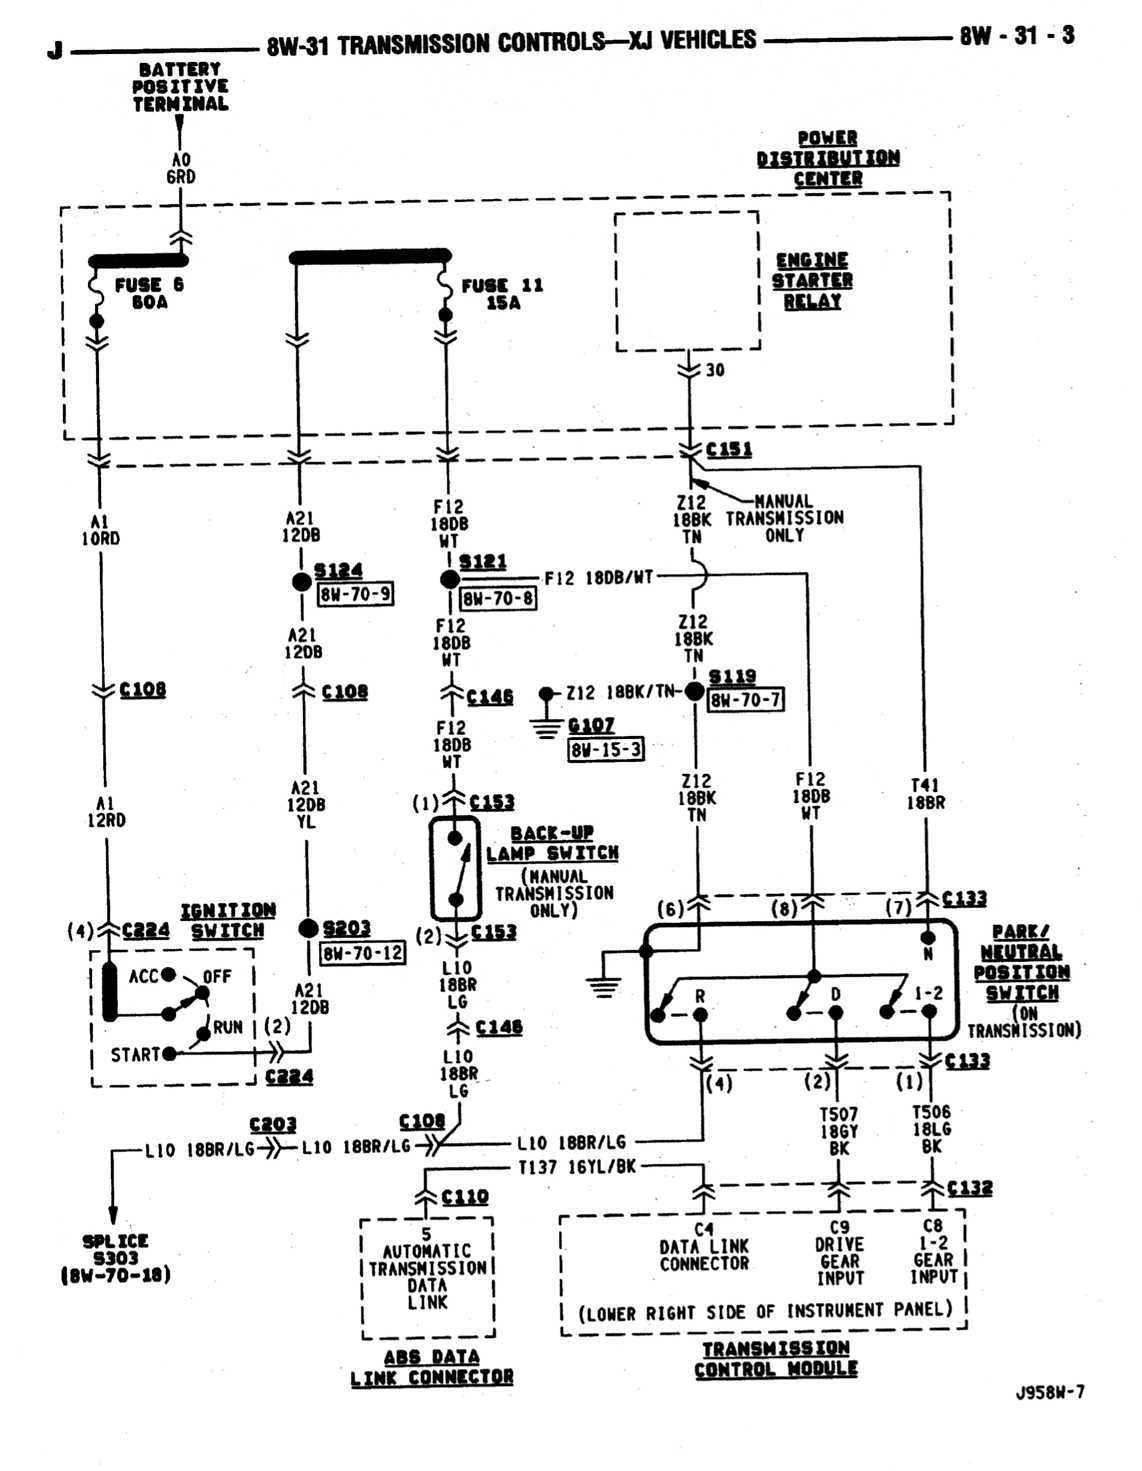 2003 Jeep Grand Cherokee Laredo Fuse Box Diagram. Jeep